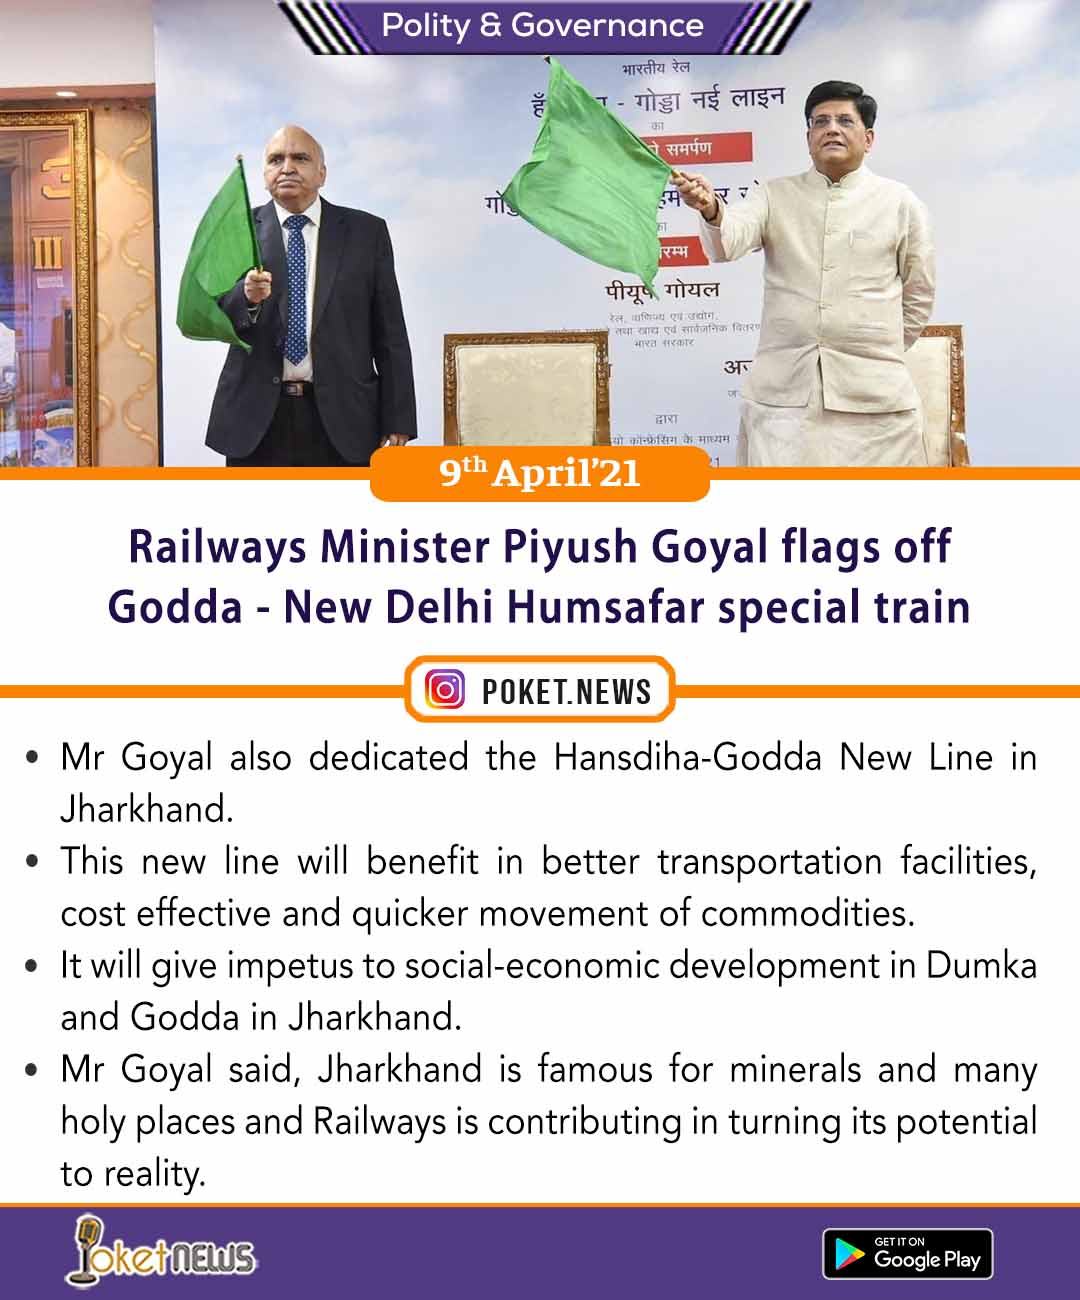 Railways Minister Piyush Goyal flags off Godda - New Delhi Humsafar special train